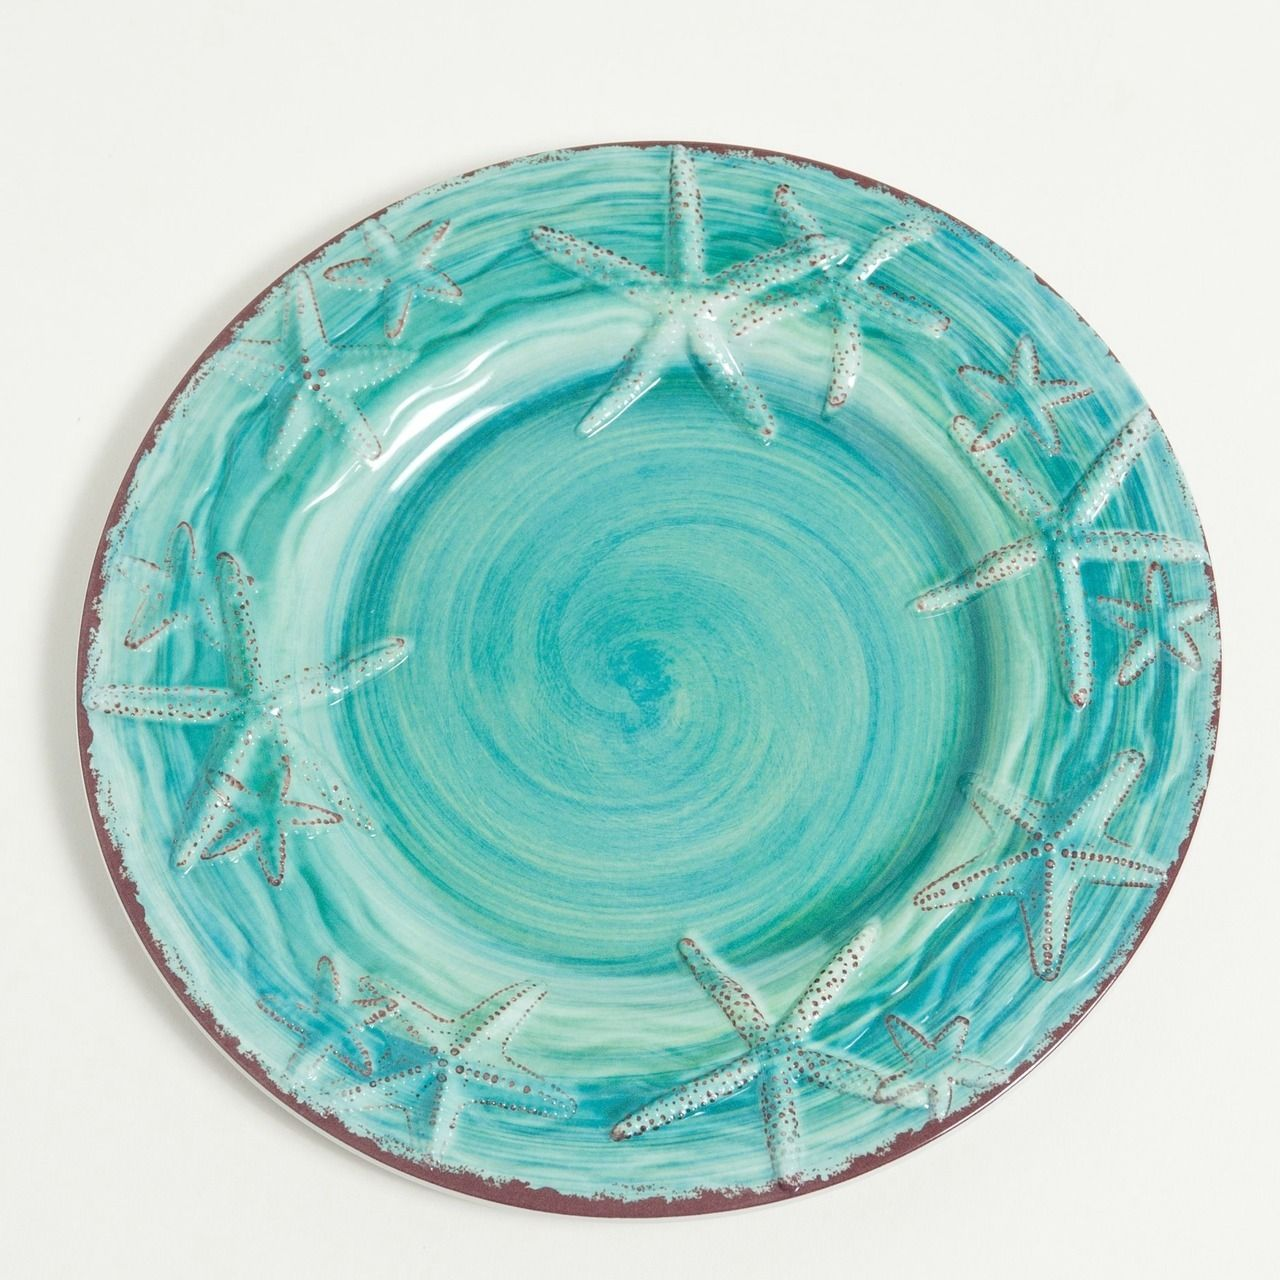 Raised Turquoise Starfish Salad Plates - Set of 4  sc 1 st  Pinterest & Raised Turquoise Starfish Salad Plates - Set of 4 | Starfish ...